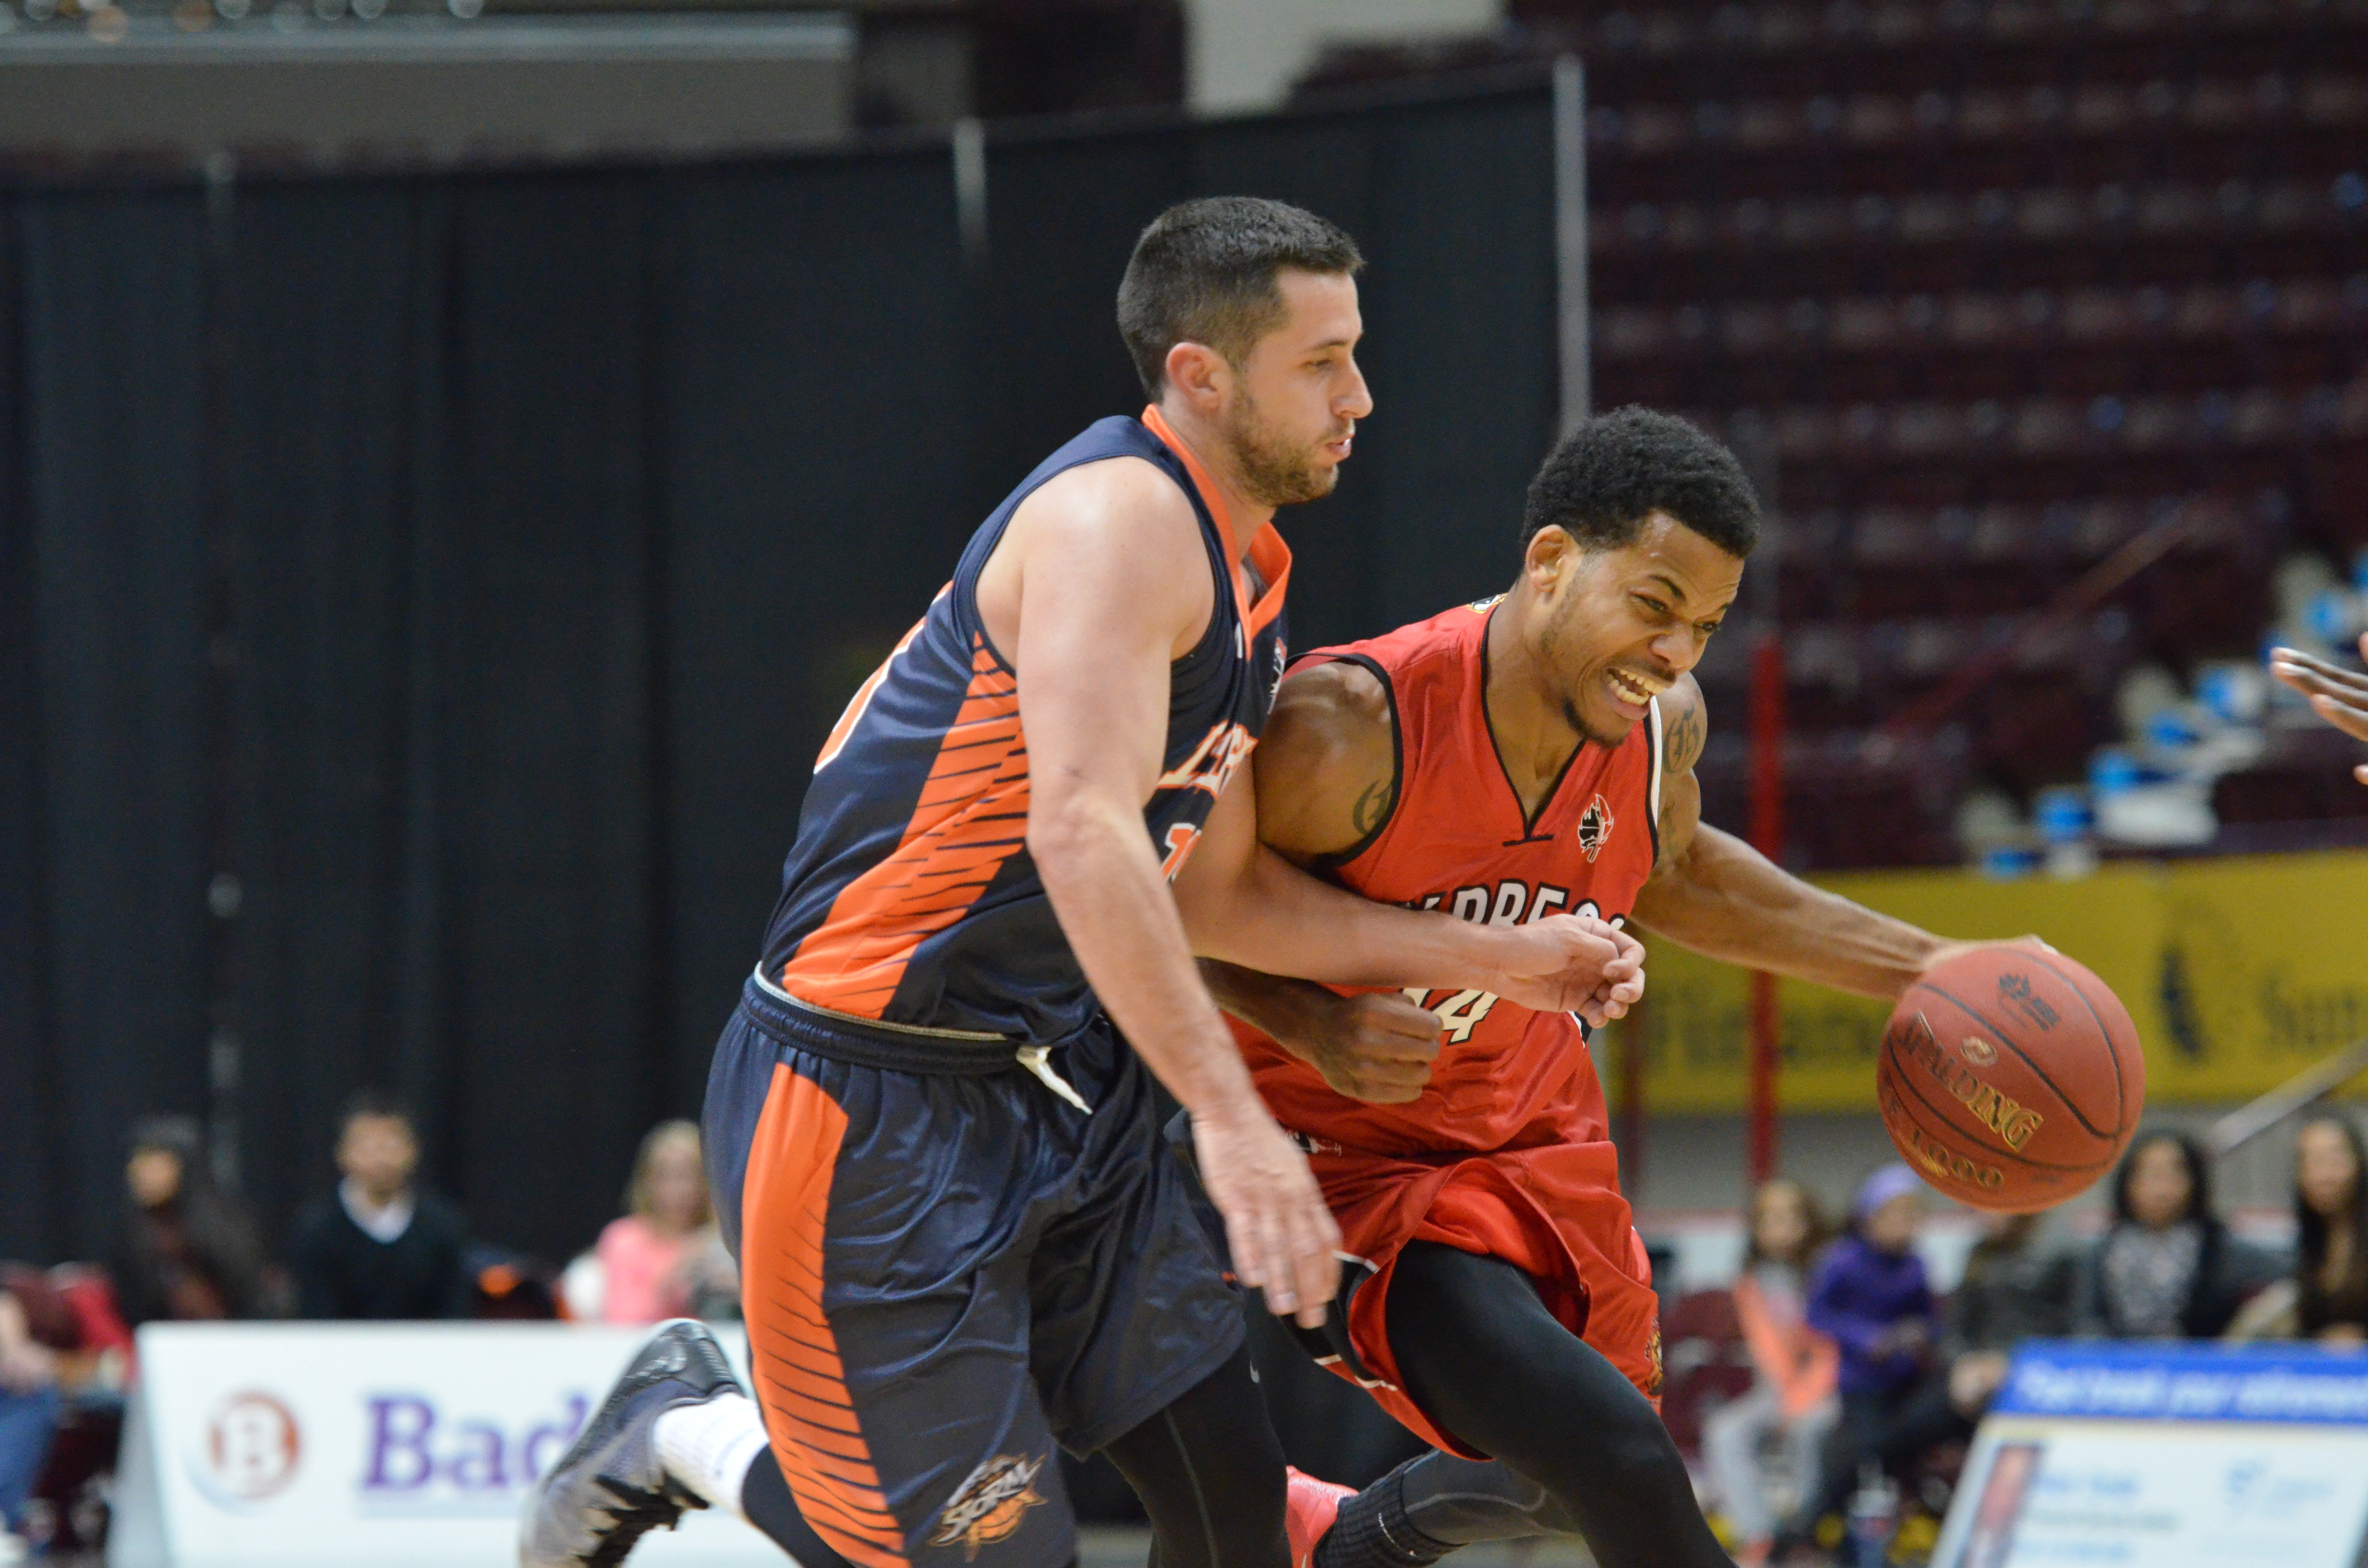 The Windsor Express take on the Island Storm at the WFCU Centre, November 13, 2014. (Photo courtesy of the Windsor Express)